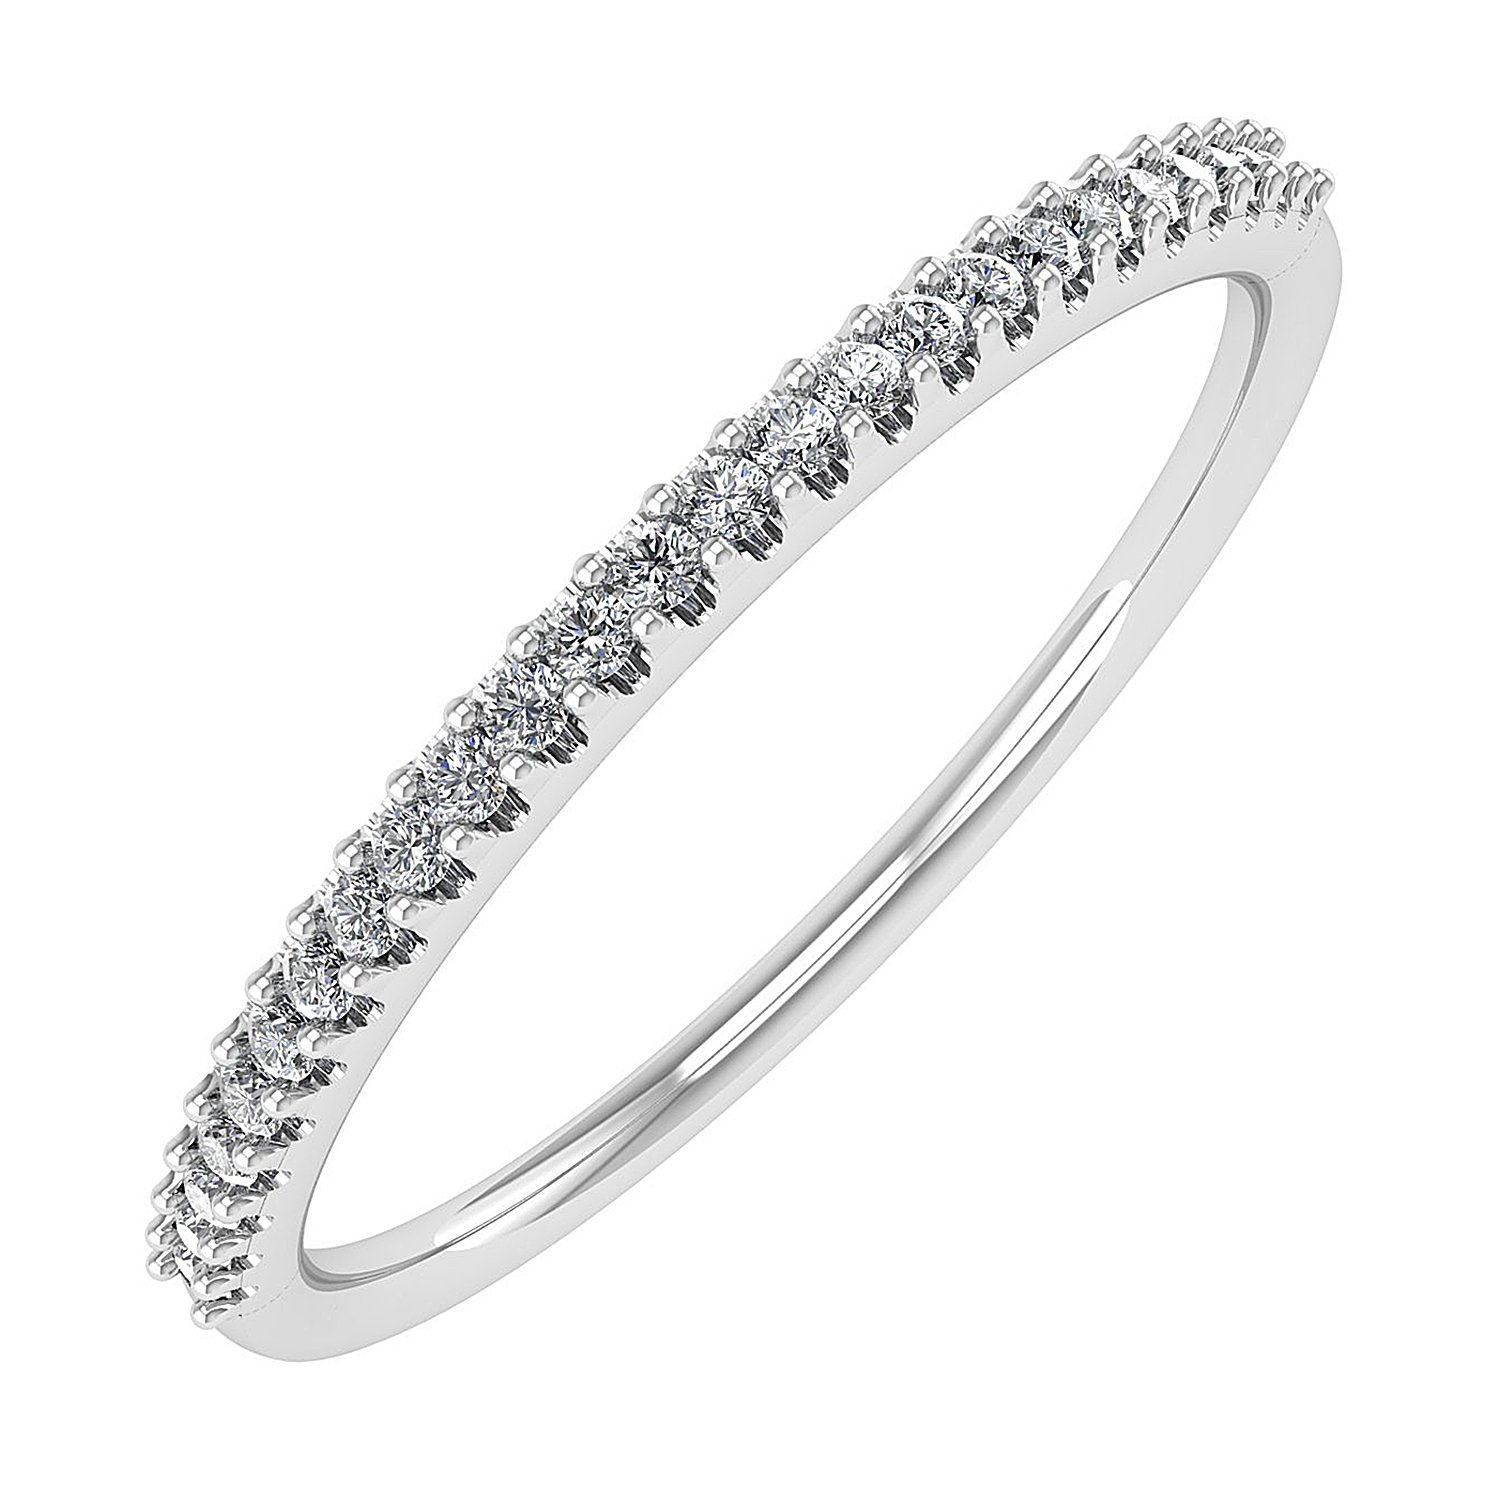 0.08 carat 10k White Gold Round Diamond Ladies Anniversary/Wedding stackable Band Ring - IGI Certified